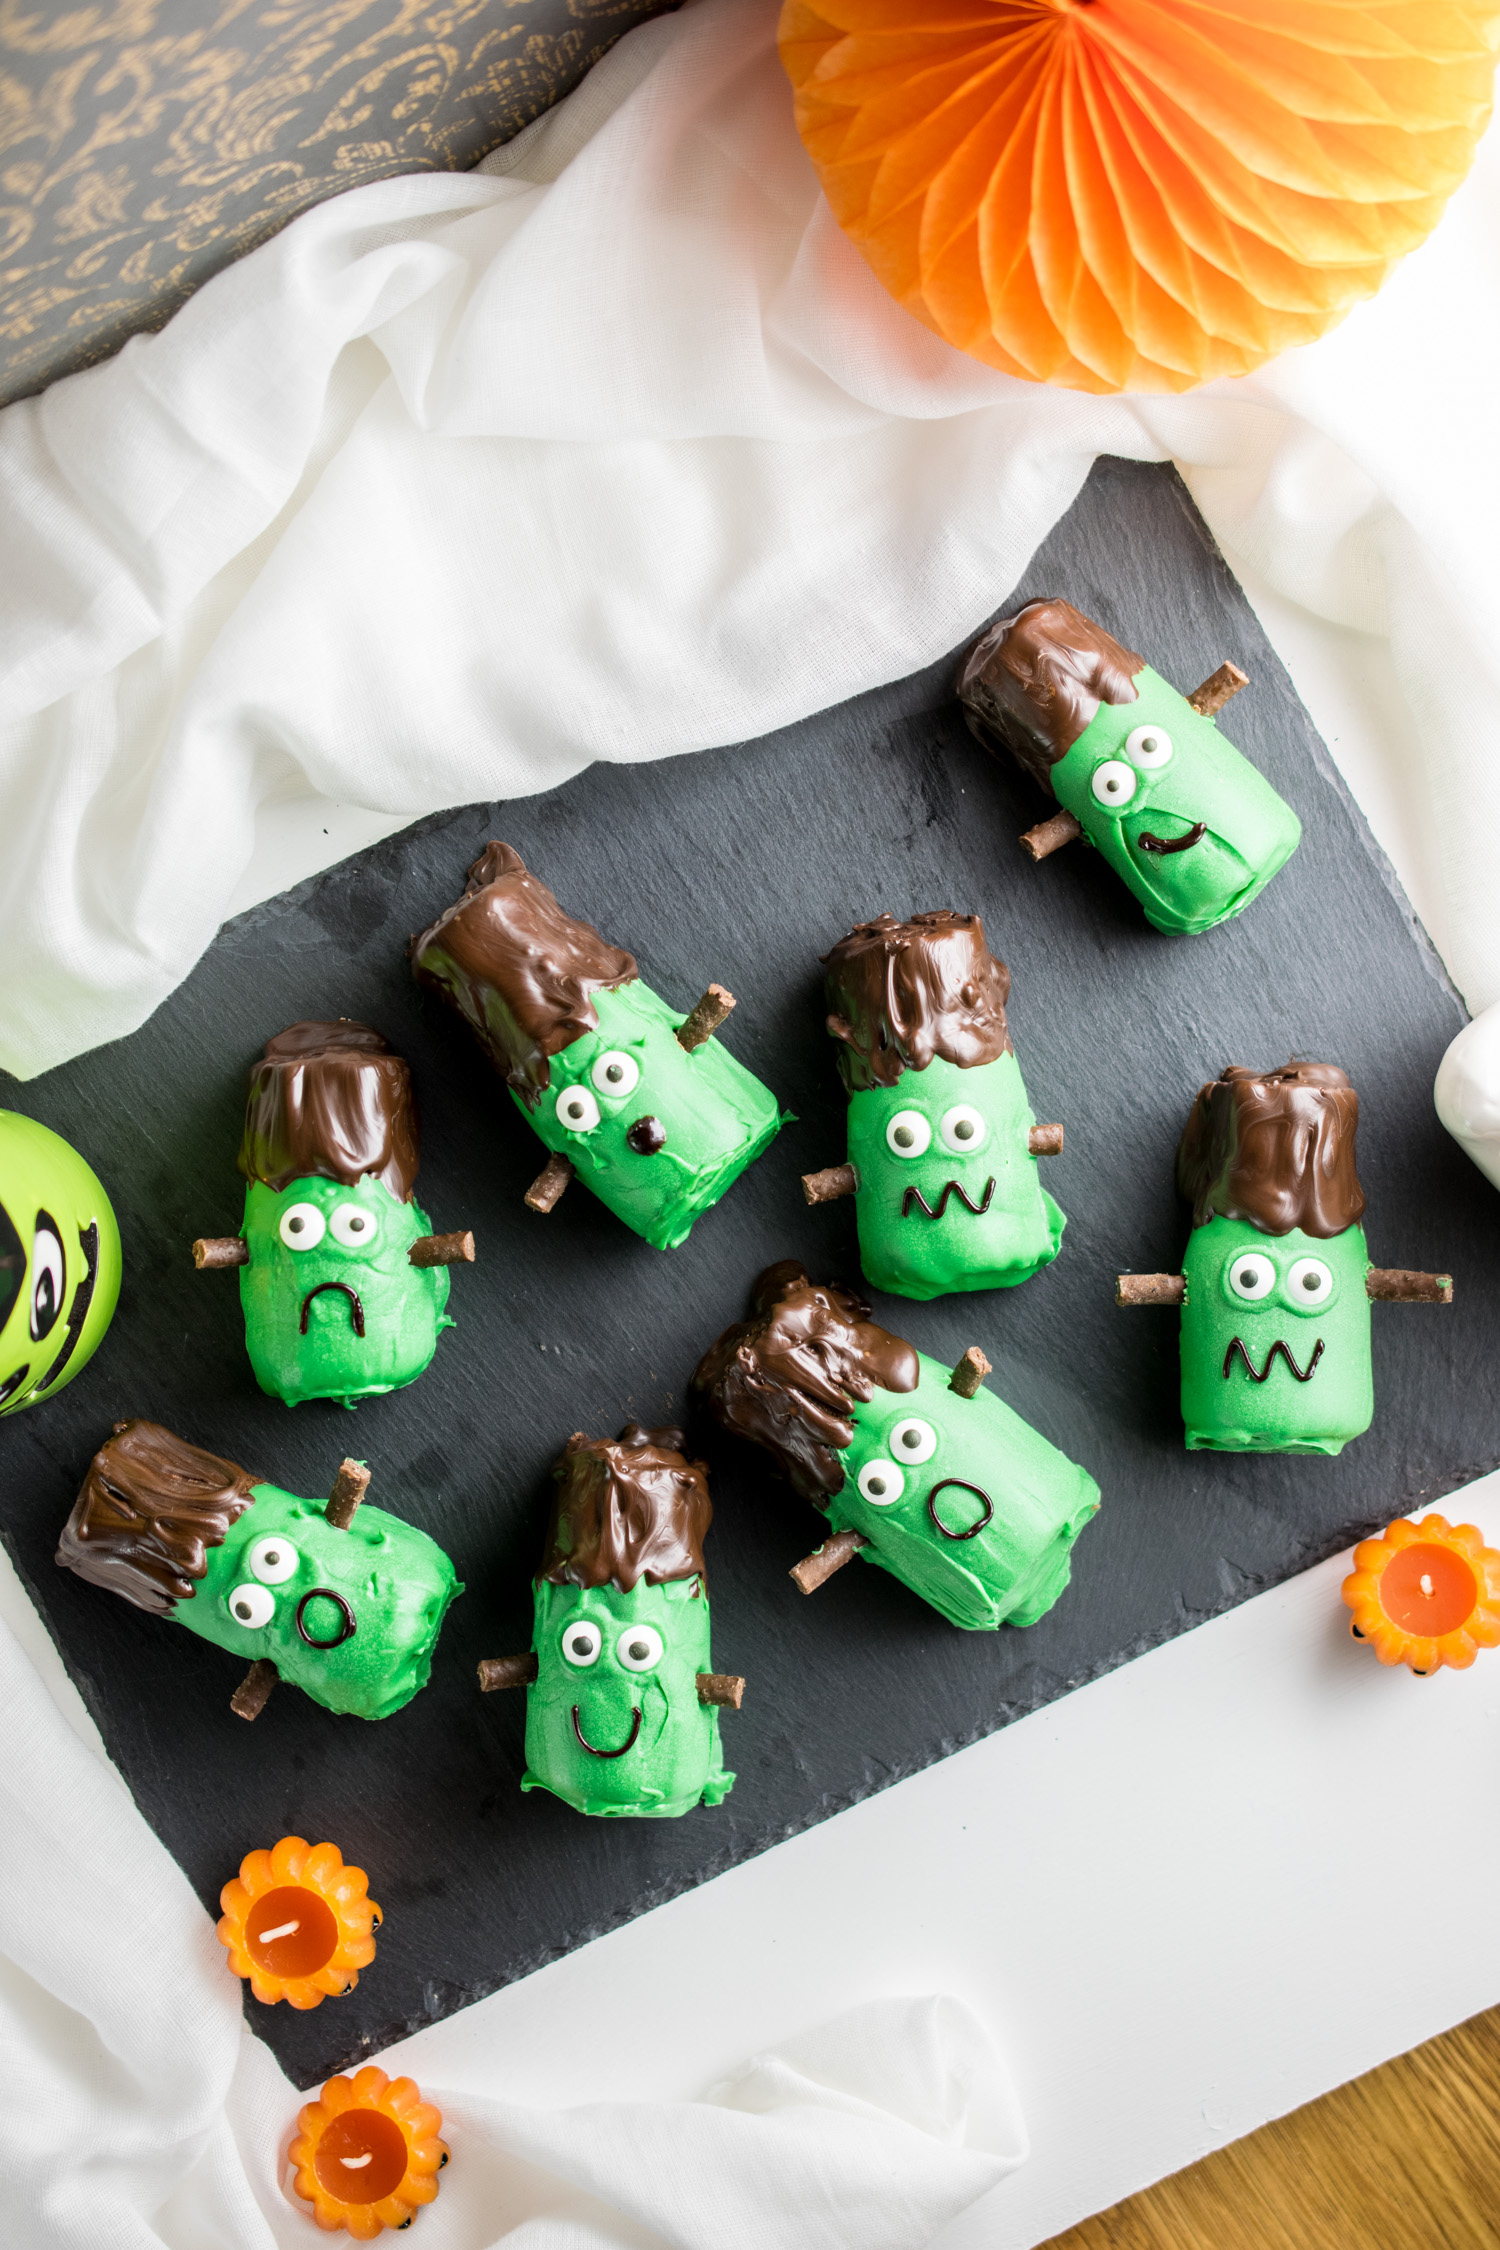 Chocolate Mint flavoured mini rolls dressed up to look like little Frankenstein's monsters!